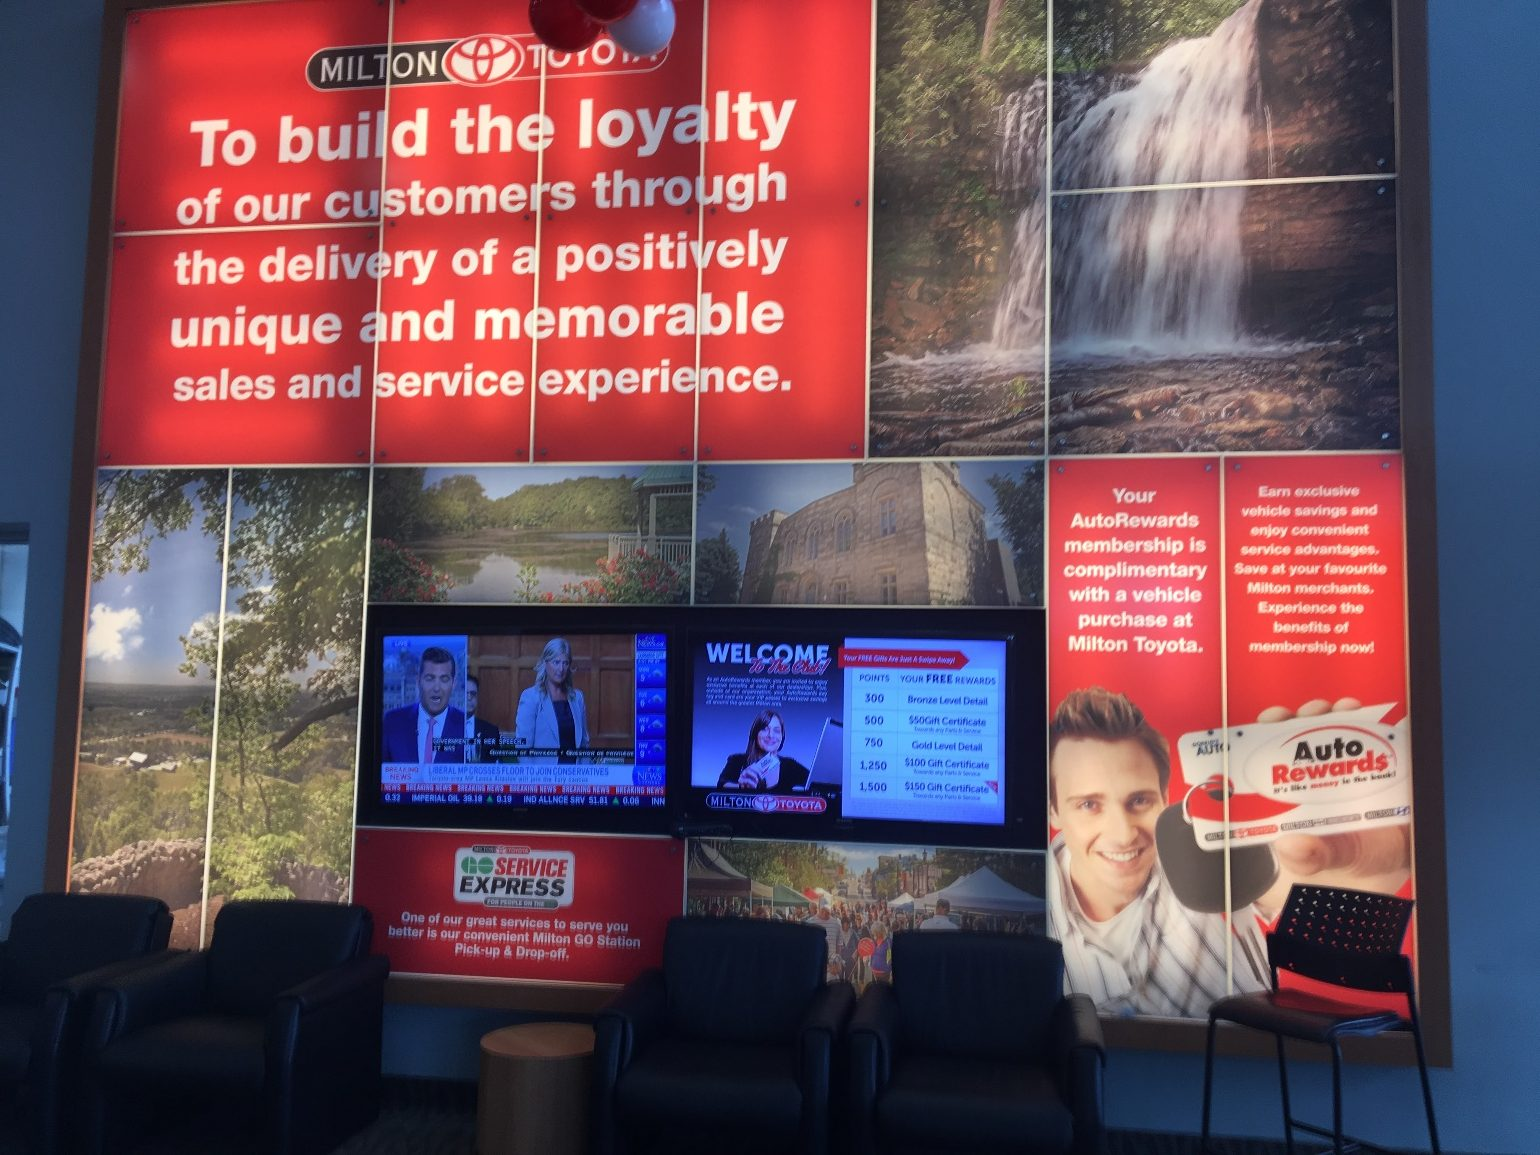 AutoAwards' Milton Toyota Automotive Dealership Loyalty Program